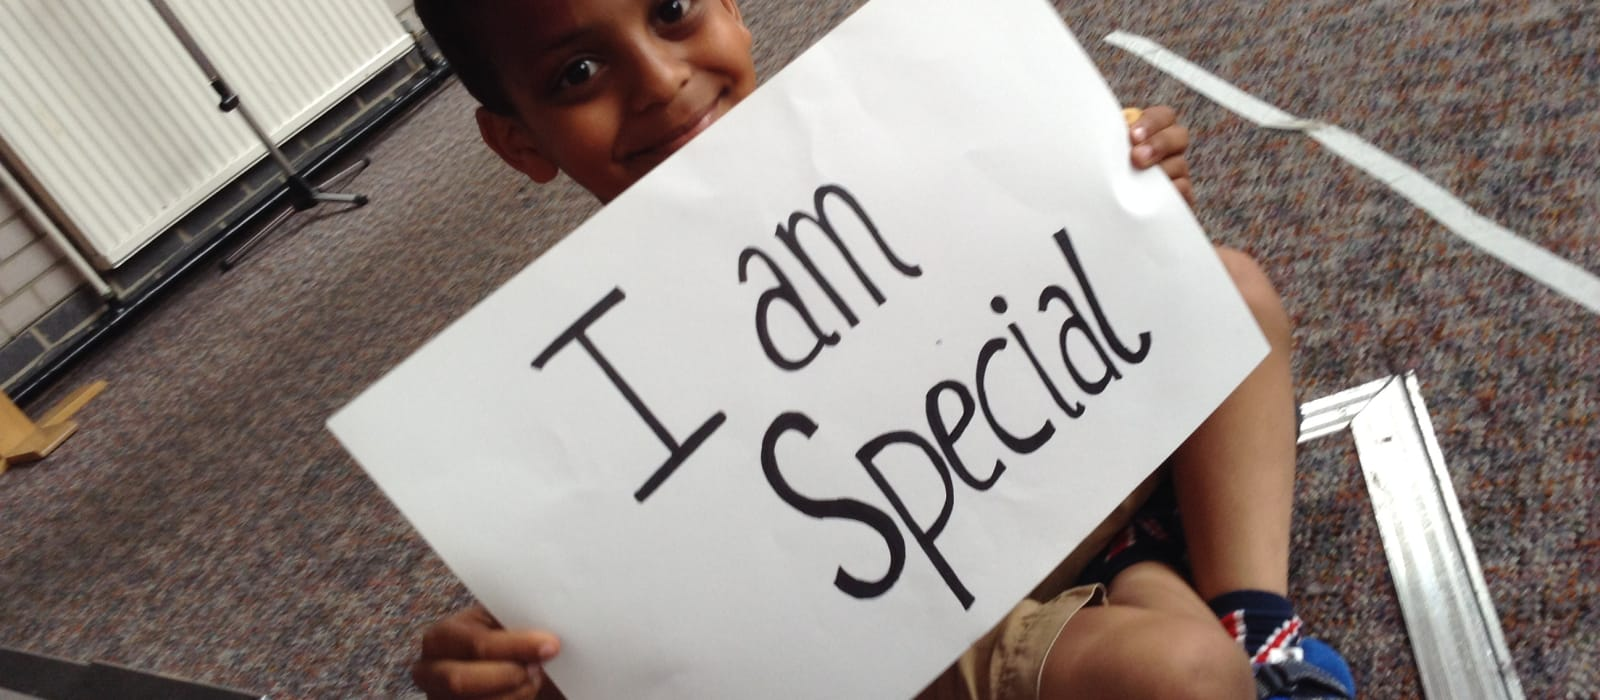 I am special child and banner